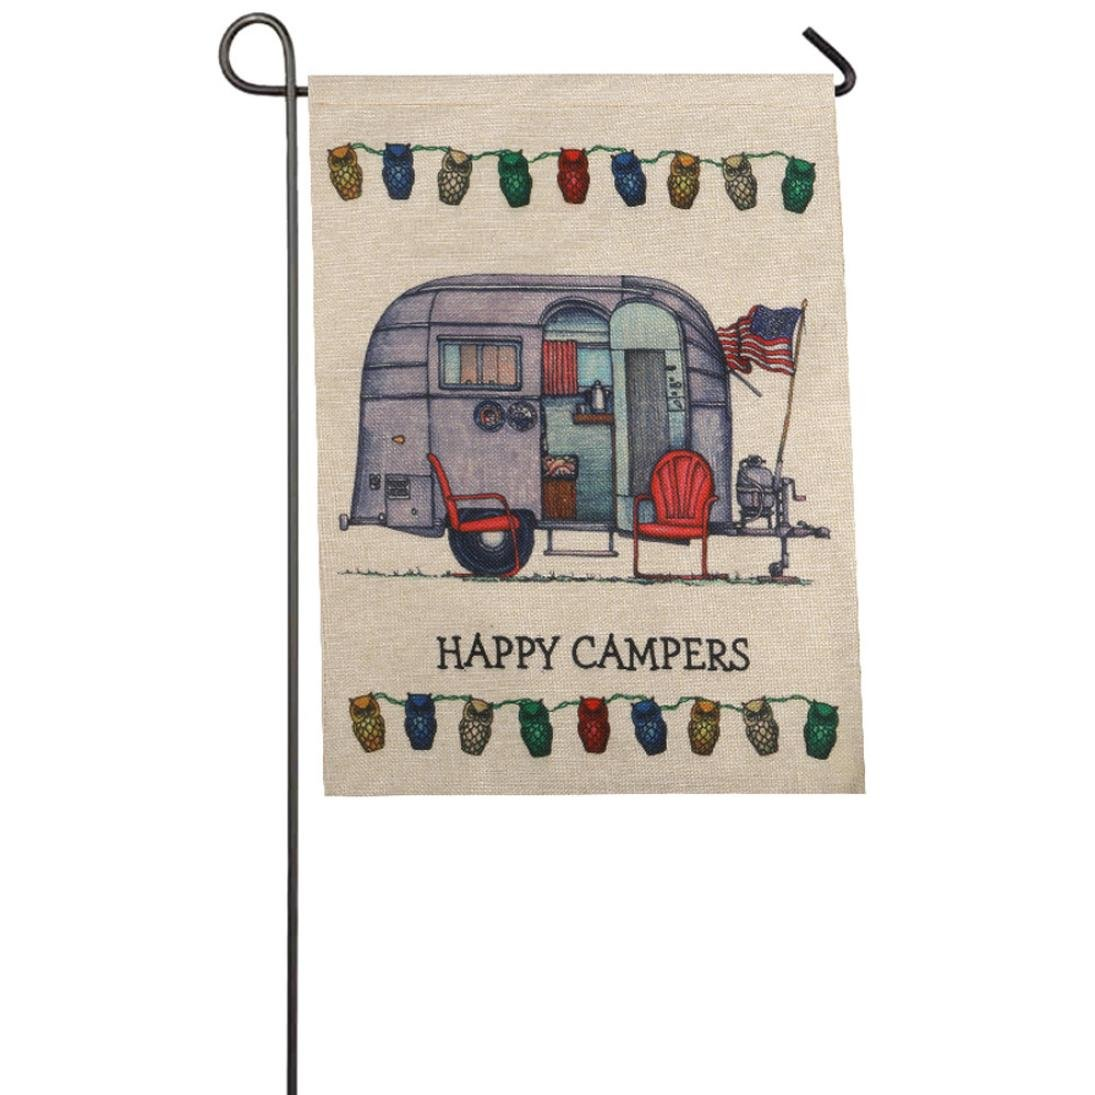 Auwer Happy Campers Pattern Garden Flag Indoor Outdoor Home Decor Car Flag Burlap Monogram Fabulous Decorative Colorful Multicolor Garden Flag 12.6 x 18 Inches (F)